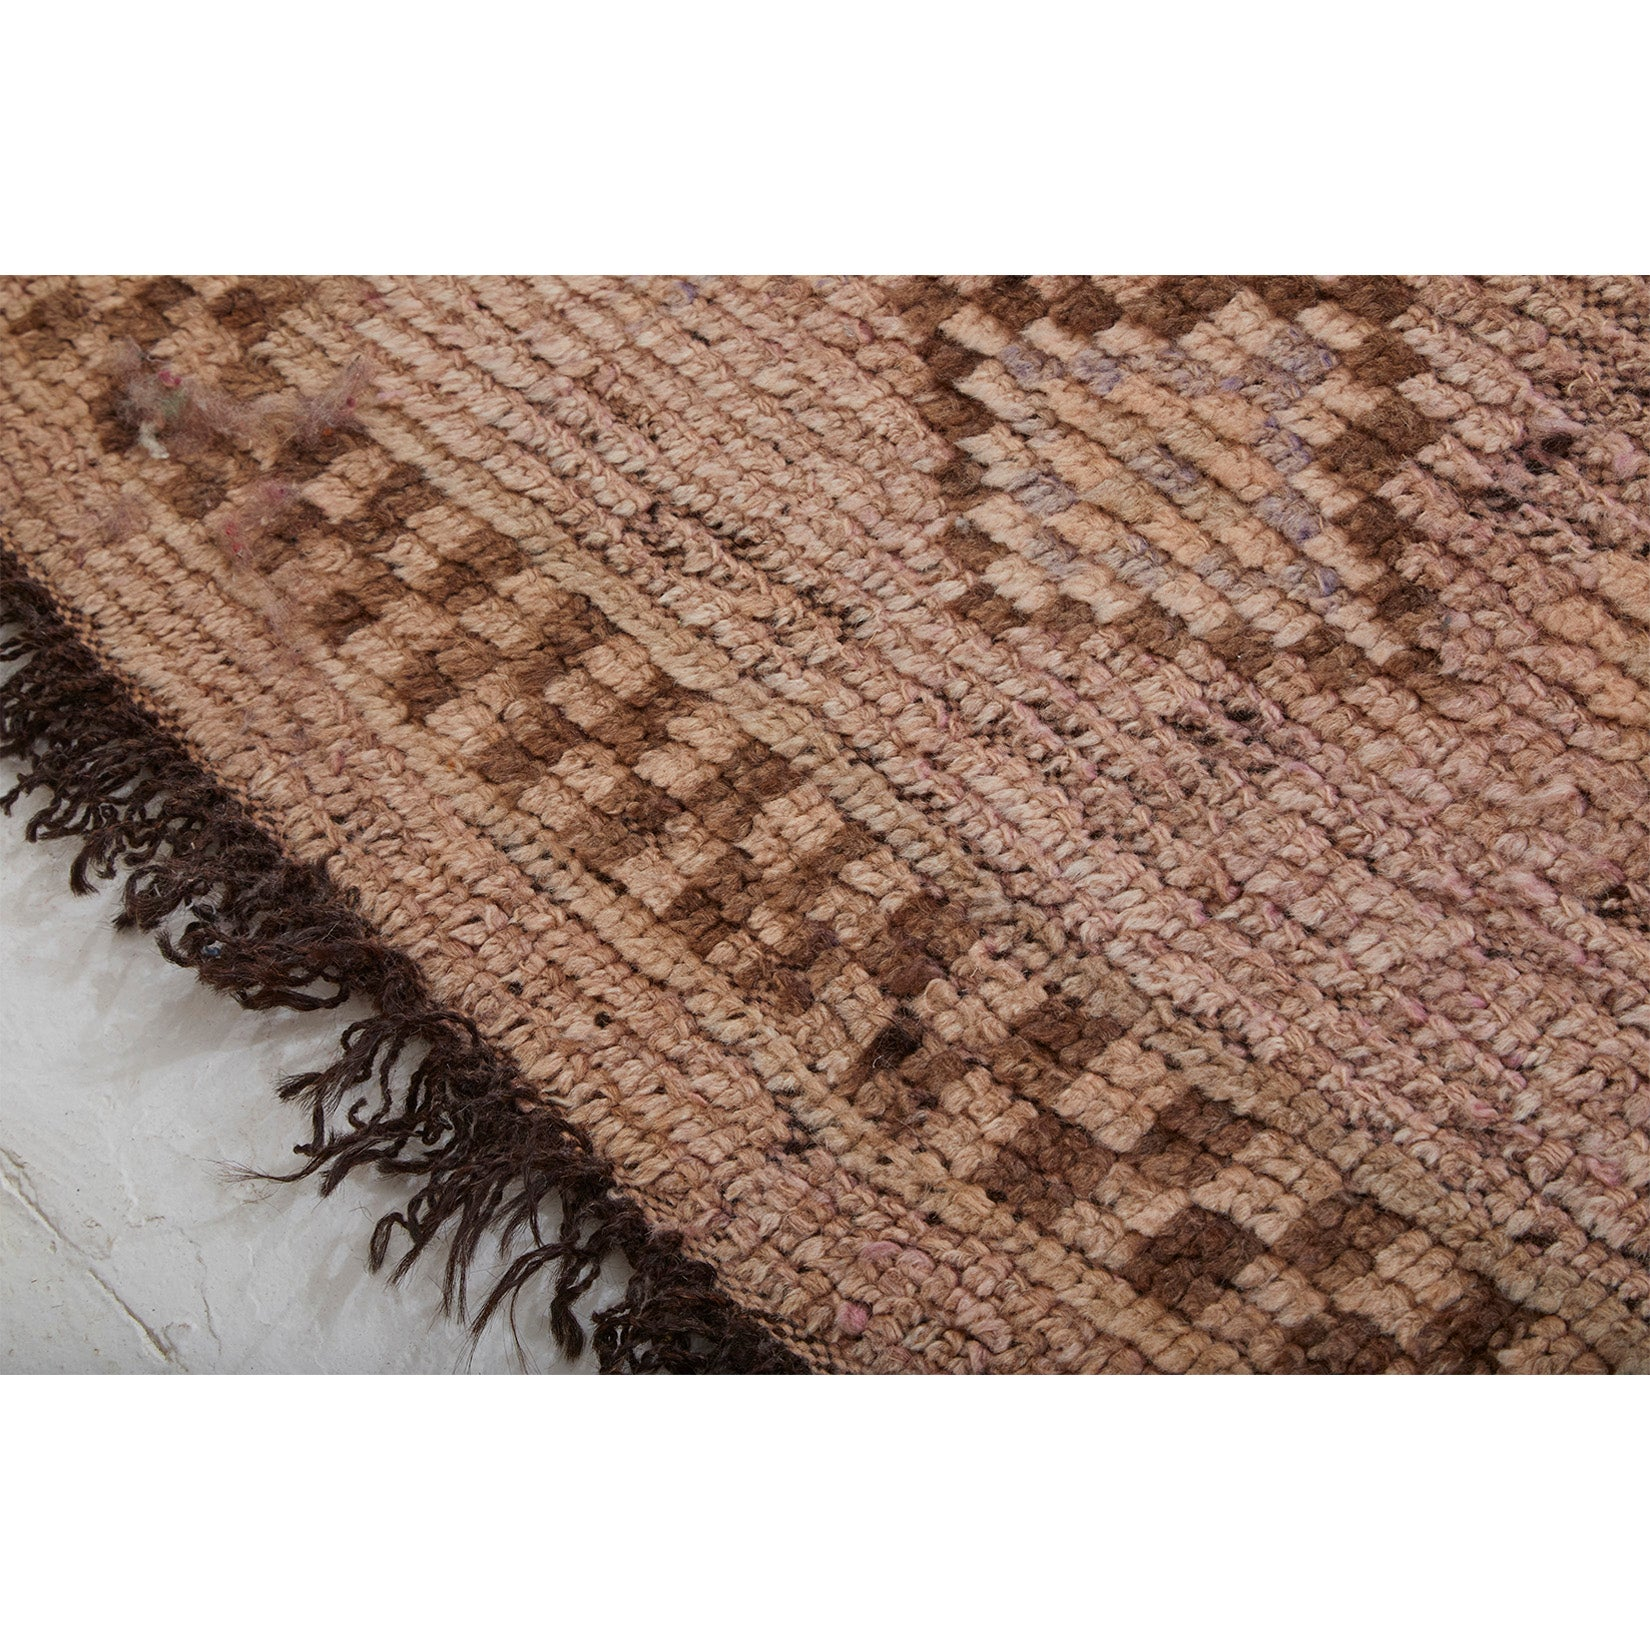 Detail of vintage Moroccan berber rug with brown goat hair fringe